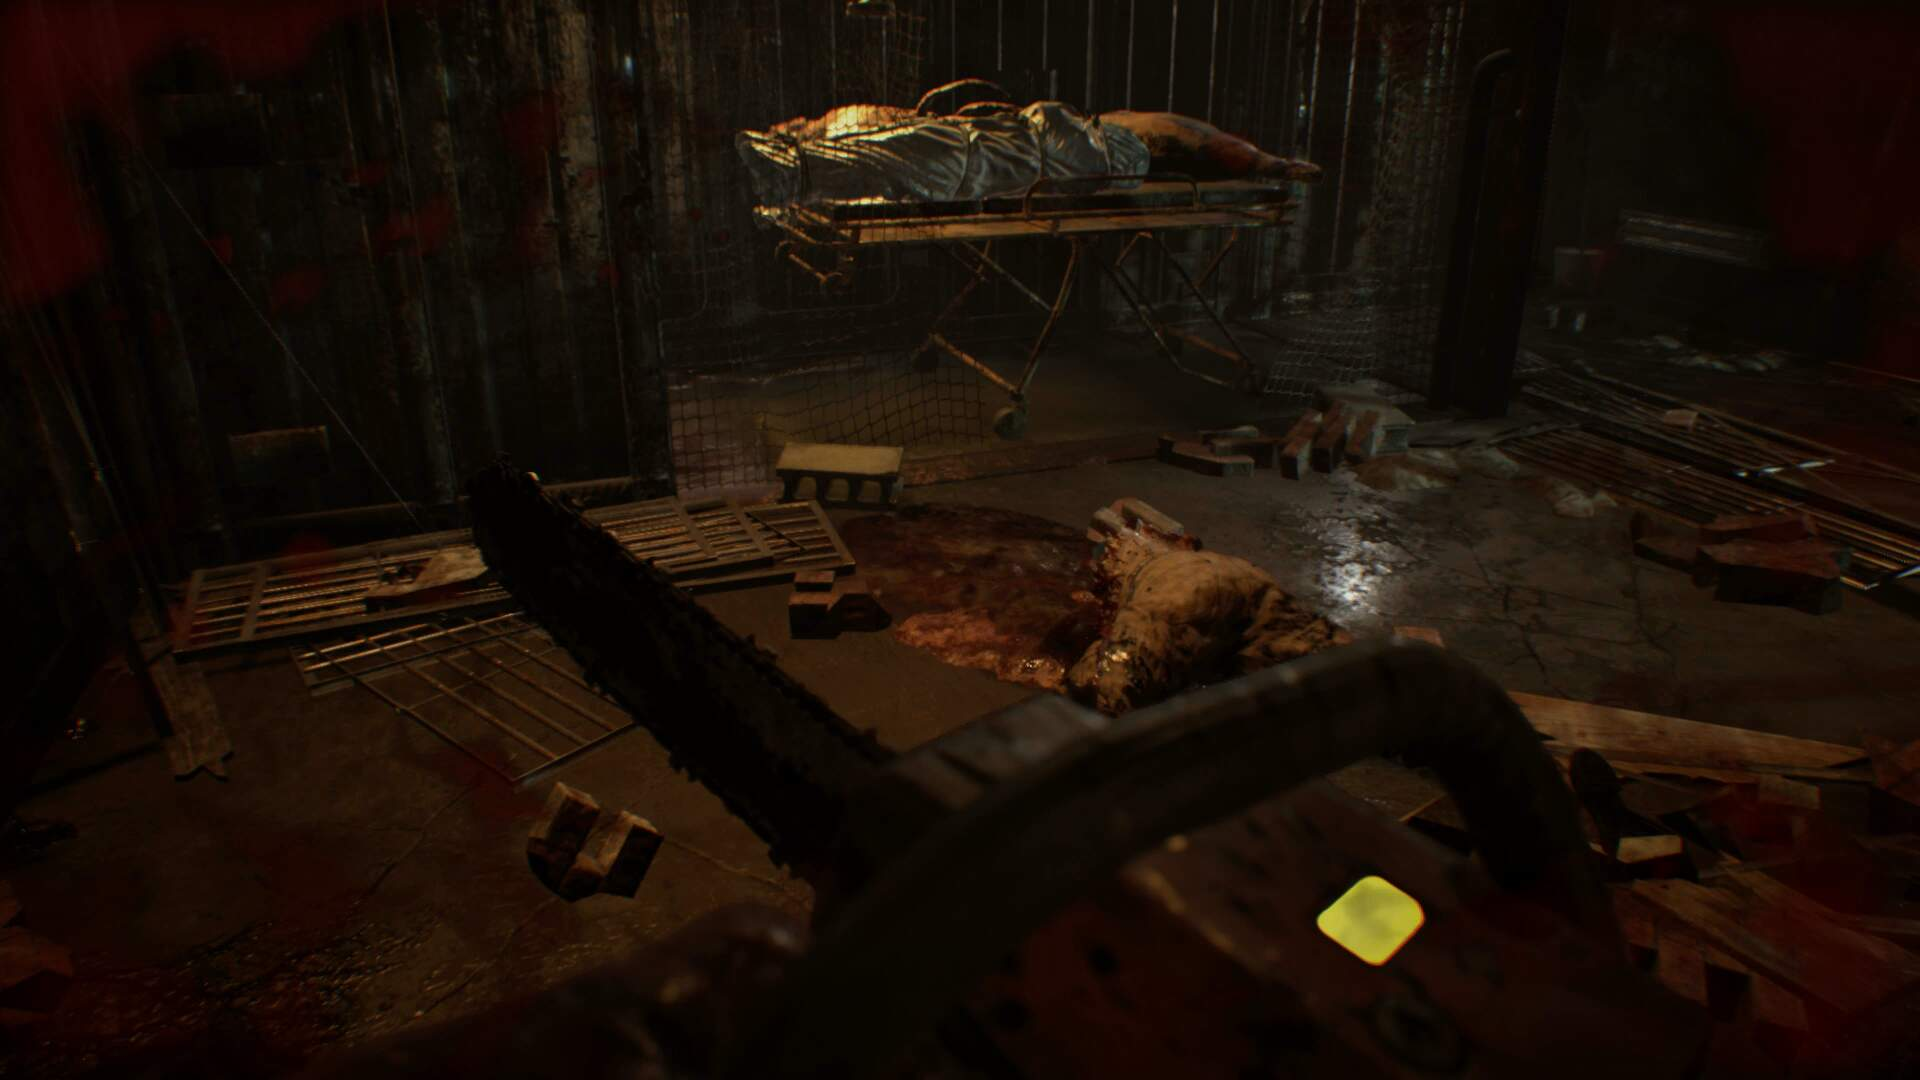 Resident Evil 7 Guide: How To Get Infinite Ammo, Unlock Madhouse Difficulty - All the Unlocks and Cheats